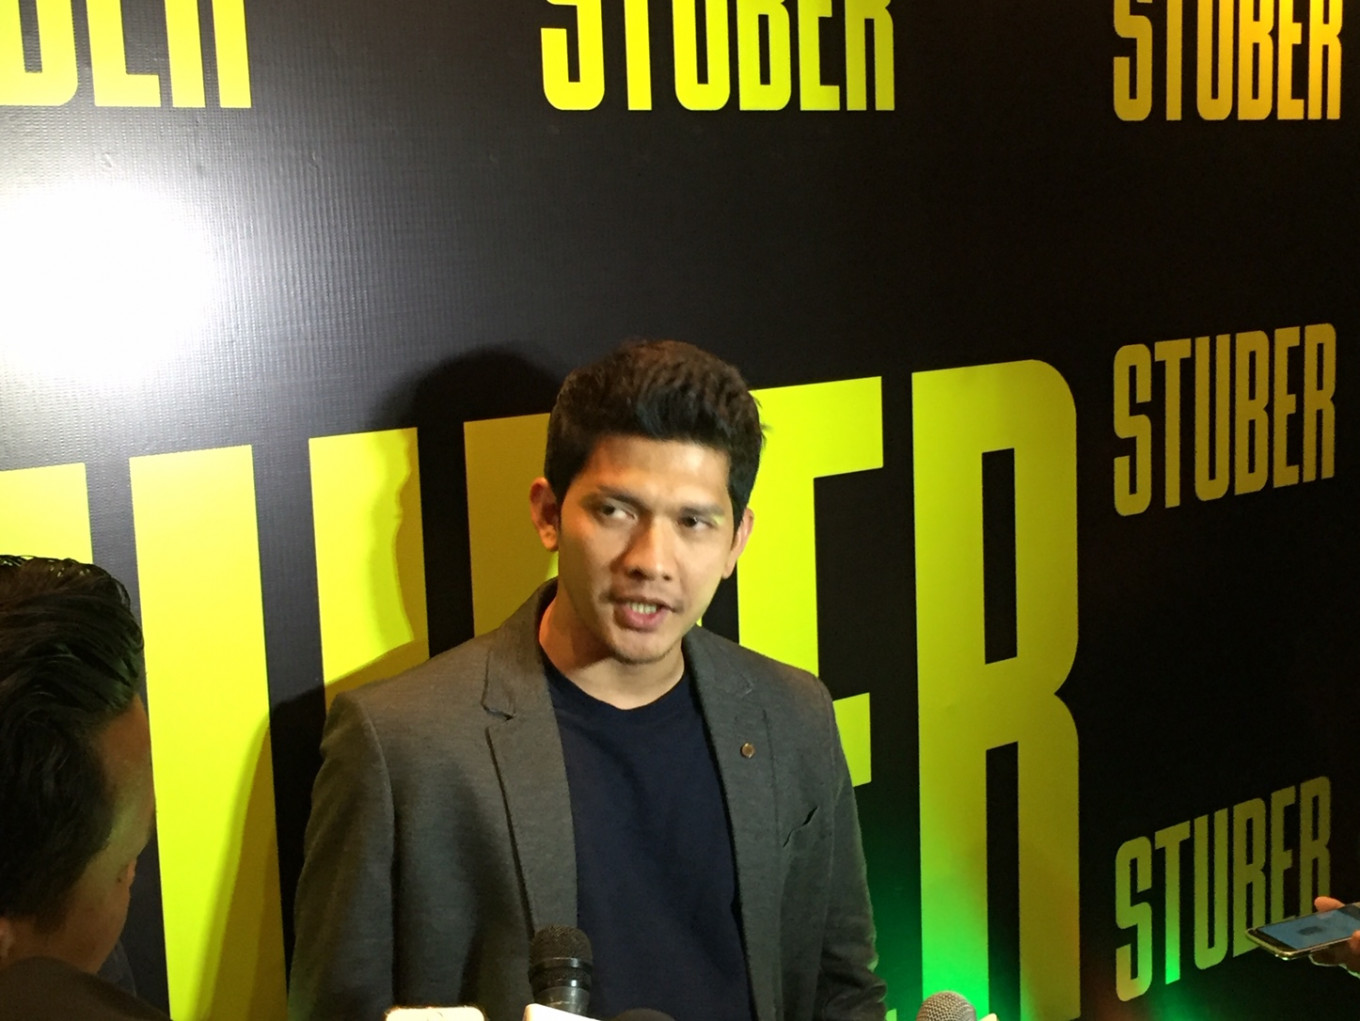 Iko Uwais changes his game in 'Stuber' - Entertainment - The Jakarta